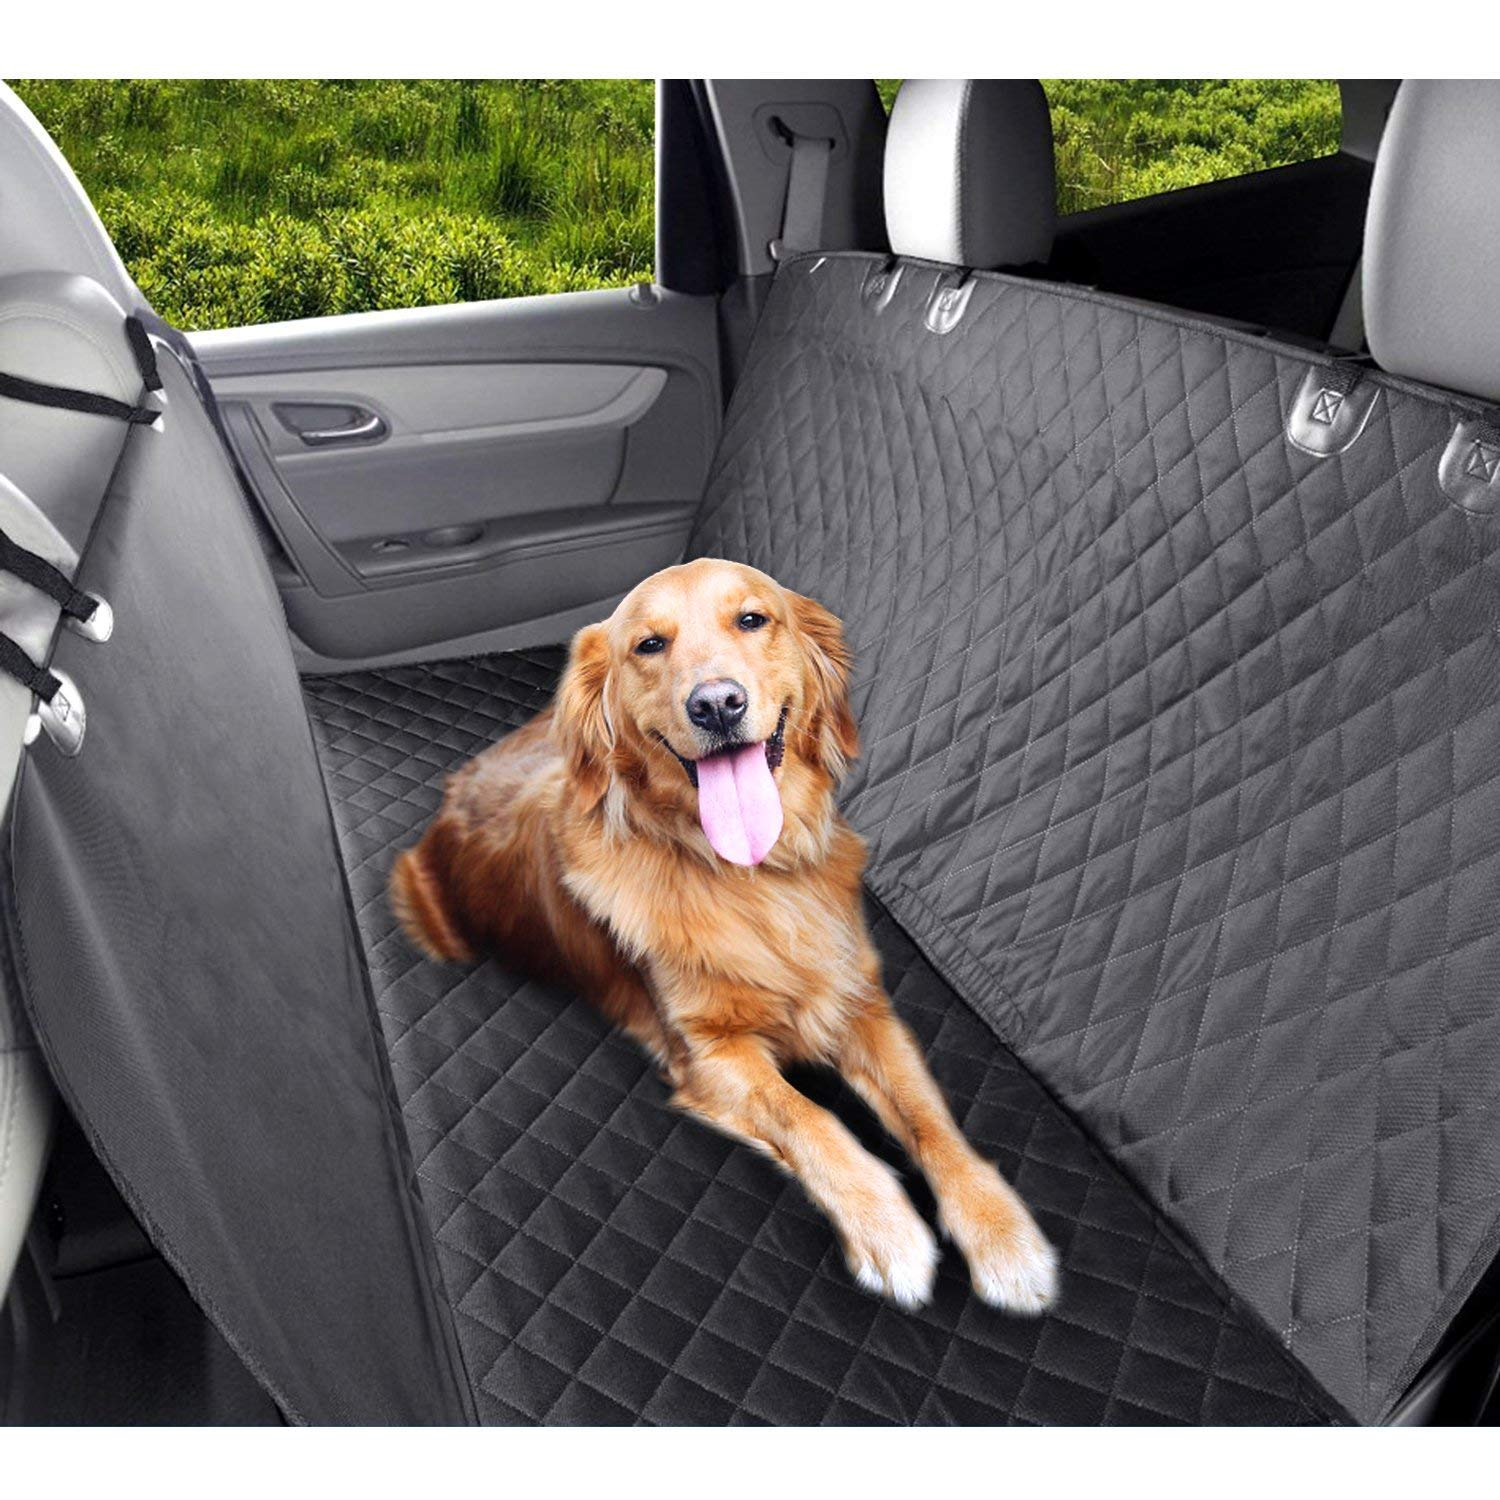 Femor Pet Seat Cover Nonslip Scratch-proof Waterproof& Abrasion Resistance Dog Car Seat Cover & Hammock Fits most Cars Trucks and SUVs & Vehicles